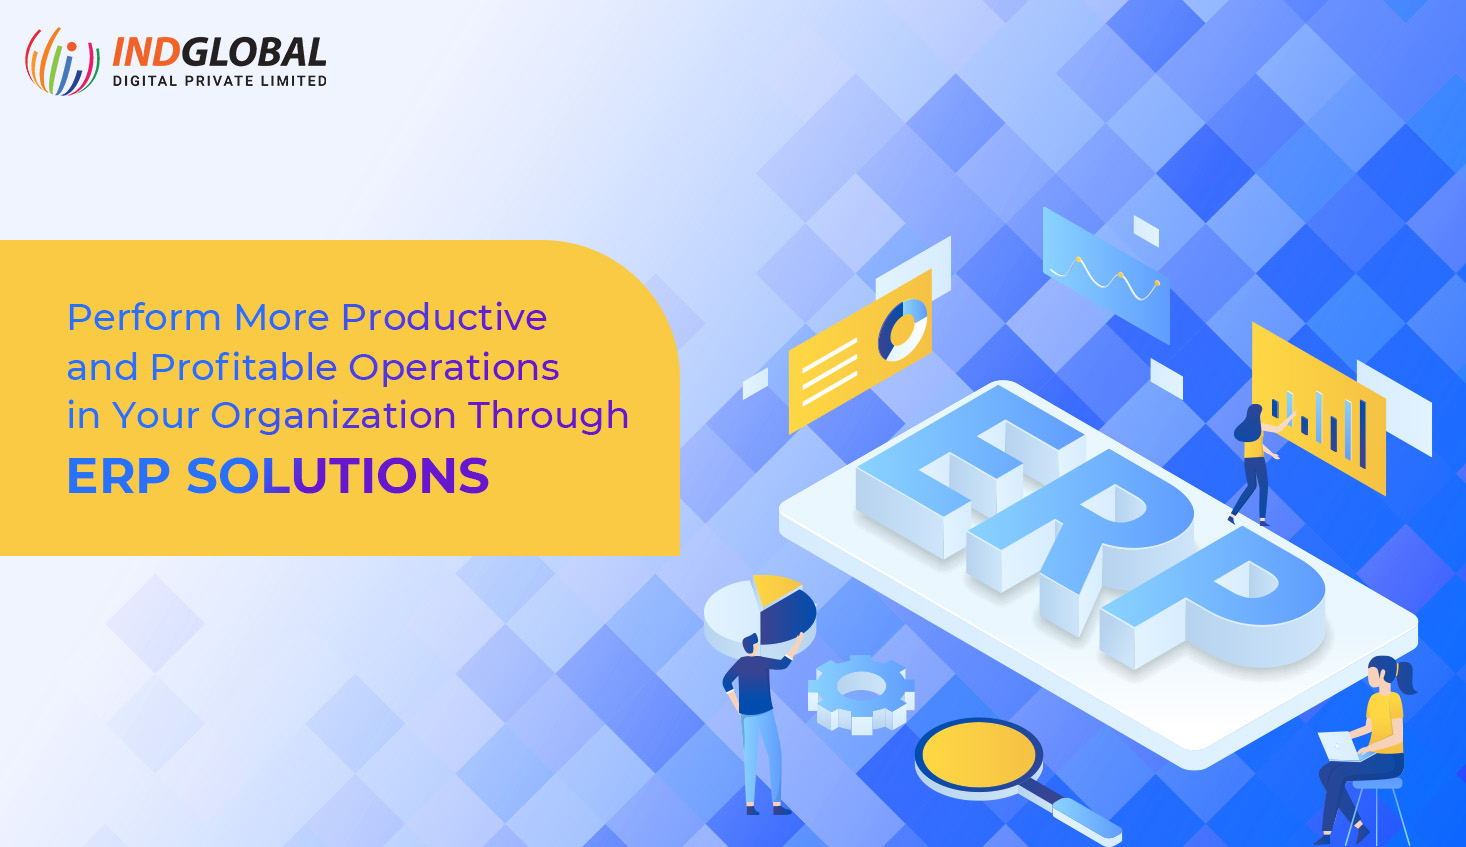 Perform more productive and profitable operations in your organization through ERP solutions